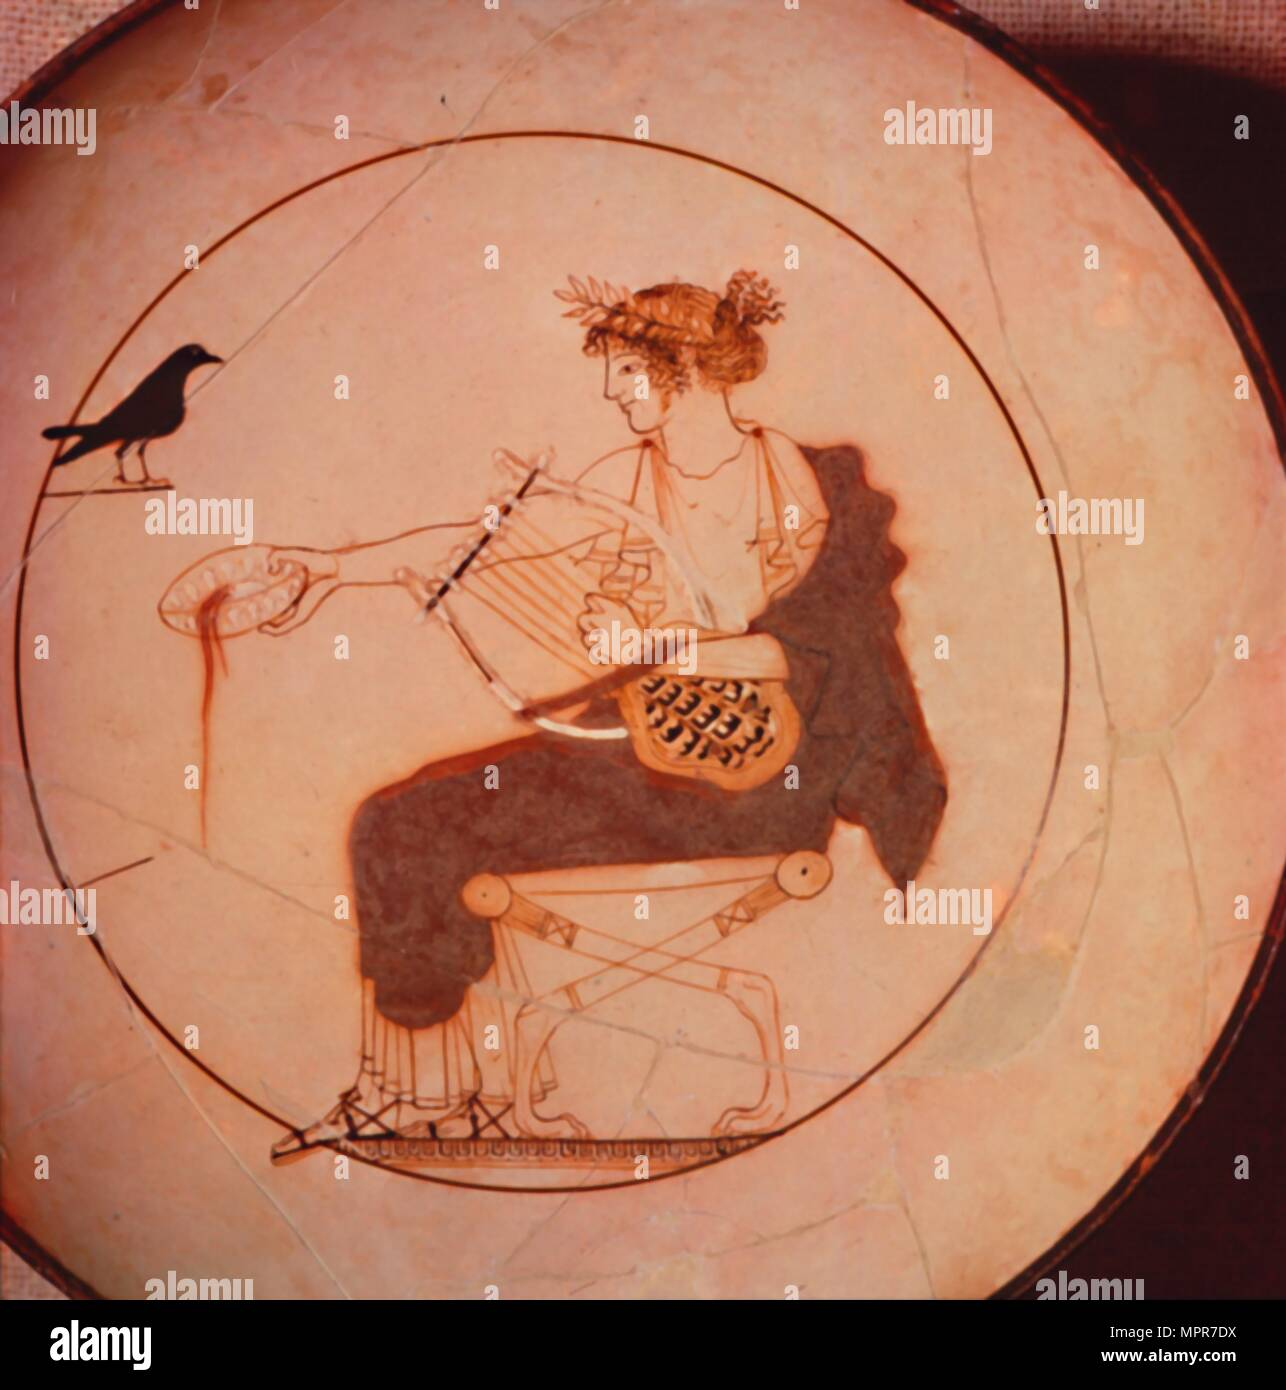 Apollo offering a libation to the raven, kylix, 5th century BC. - Stock Image